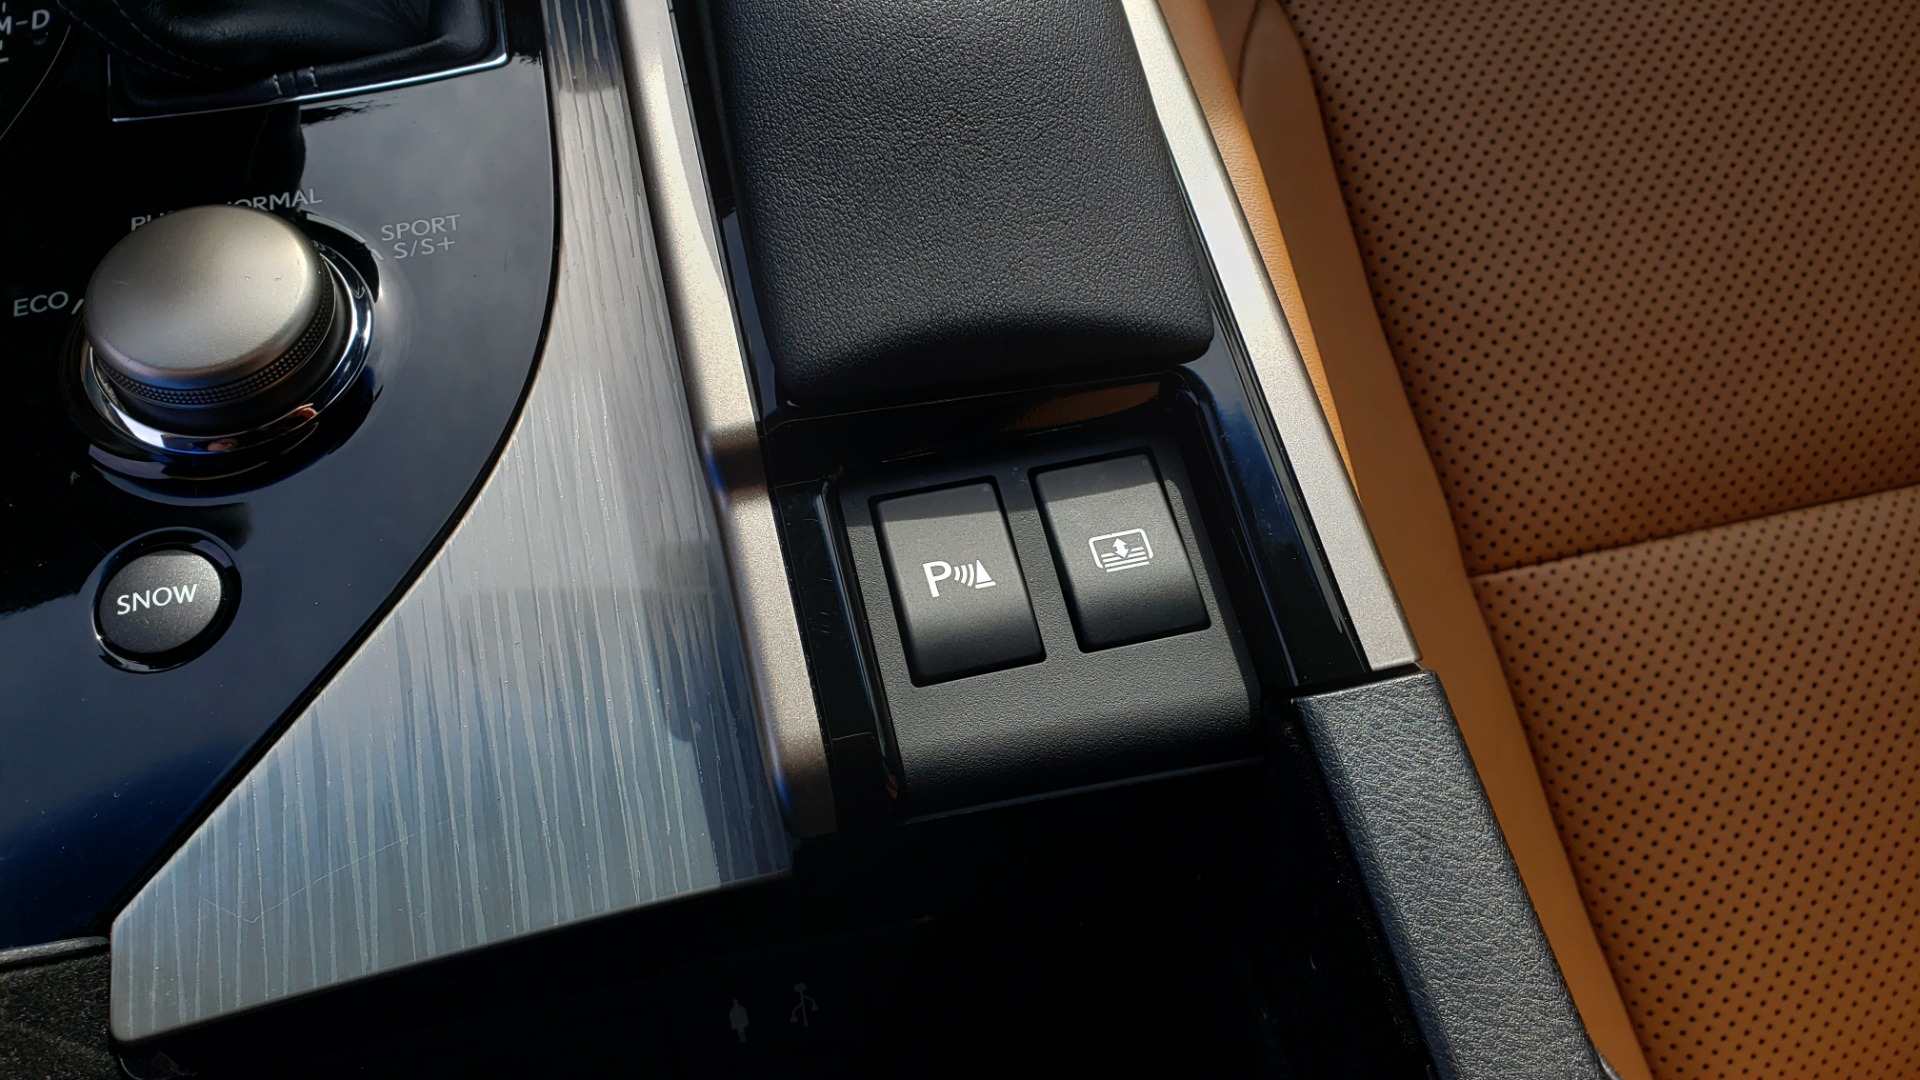 Used 2013 Lexus GS 350 F-SPORT / NAV / SUNROOF / BSM / PRK ASST / REARVIEW for sale Sold at Formula Imports in Charlotte NC 28227 51